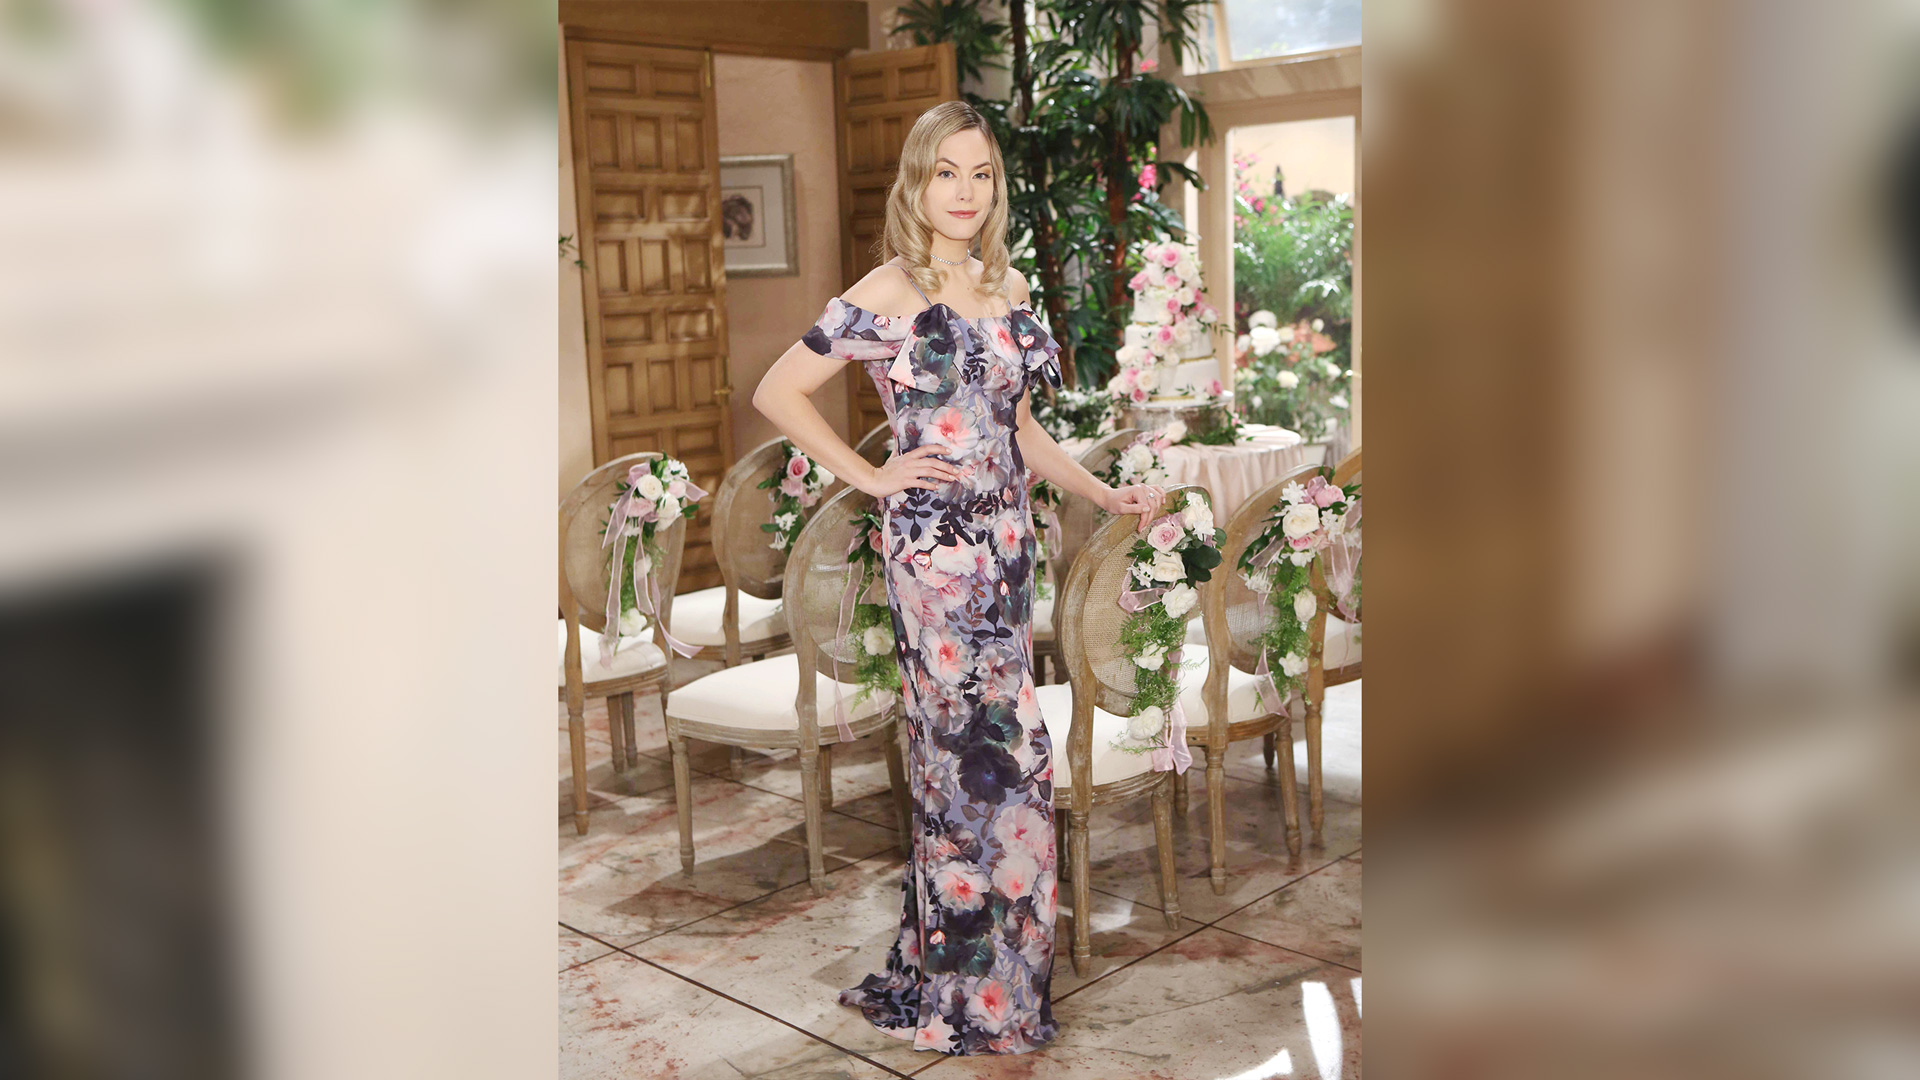 Hope Logan (Annika Noelle) in a flowy, foral dress.